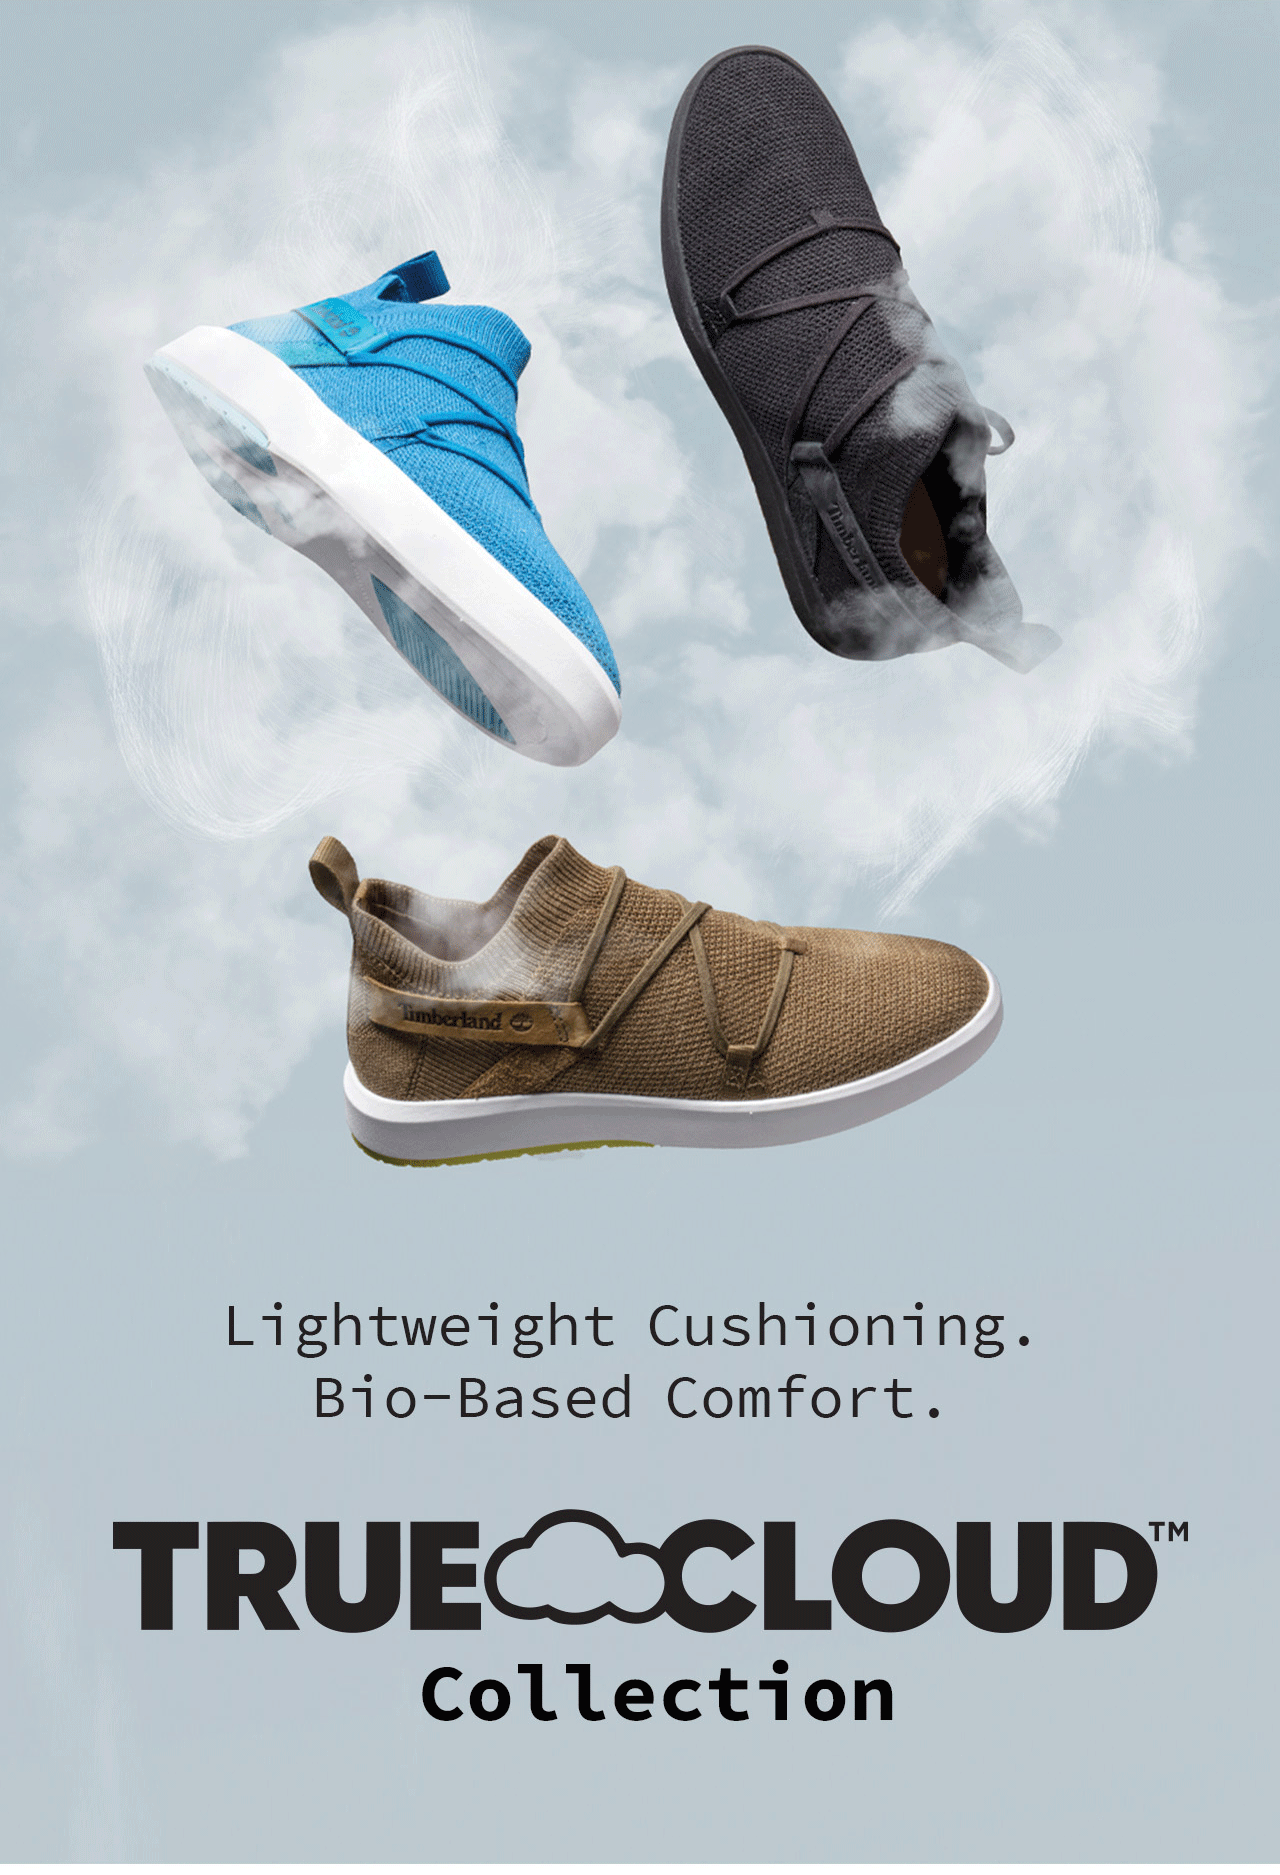 TRUE CLOUD Collection